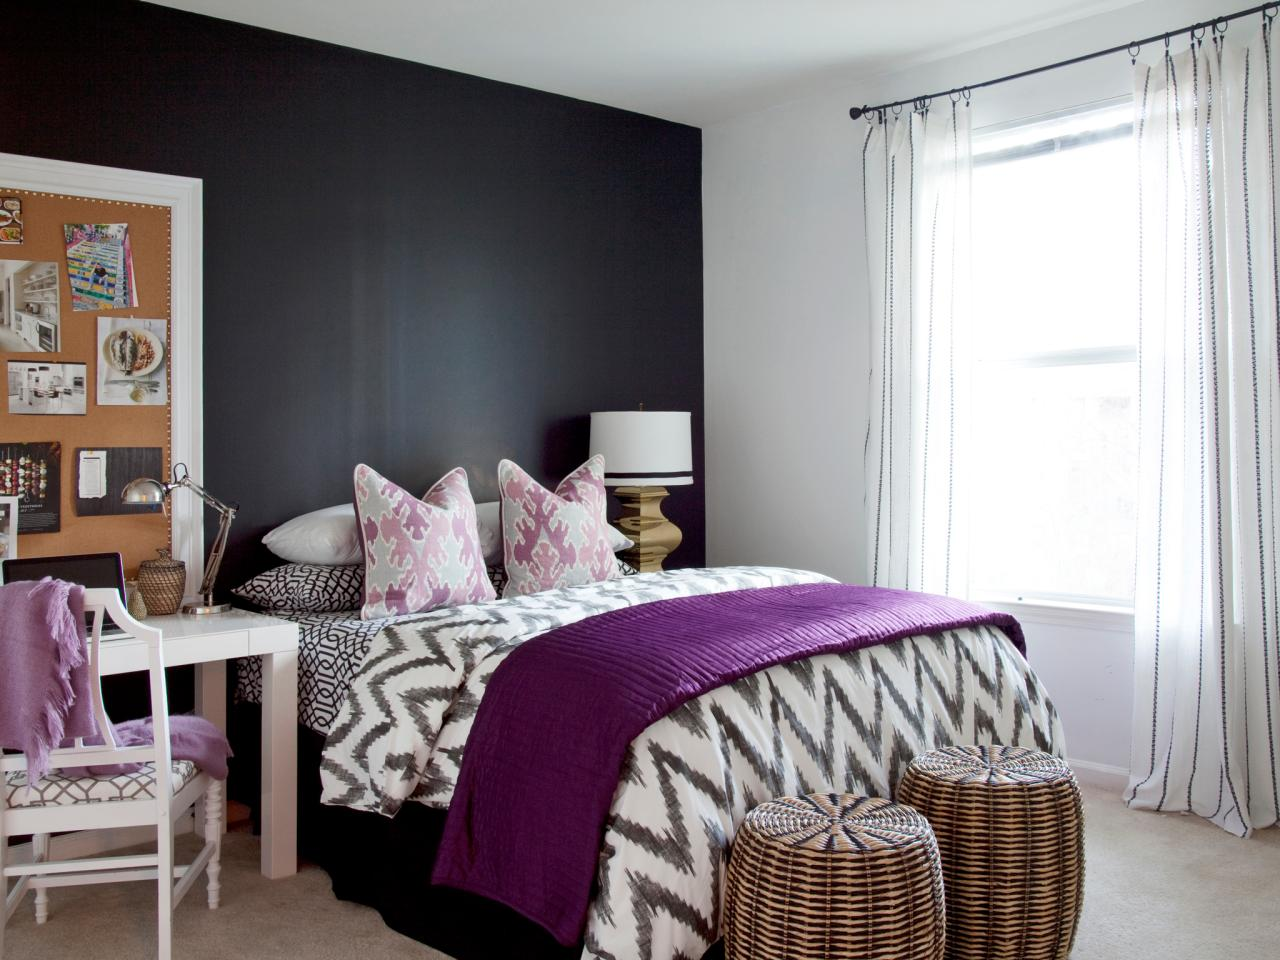 purple bedrooms: pictures, ideas & options | hgtv